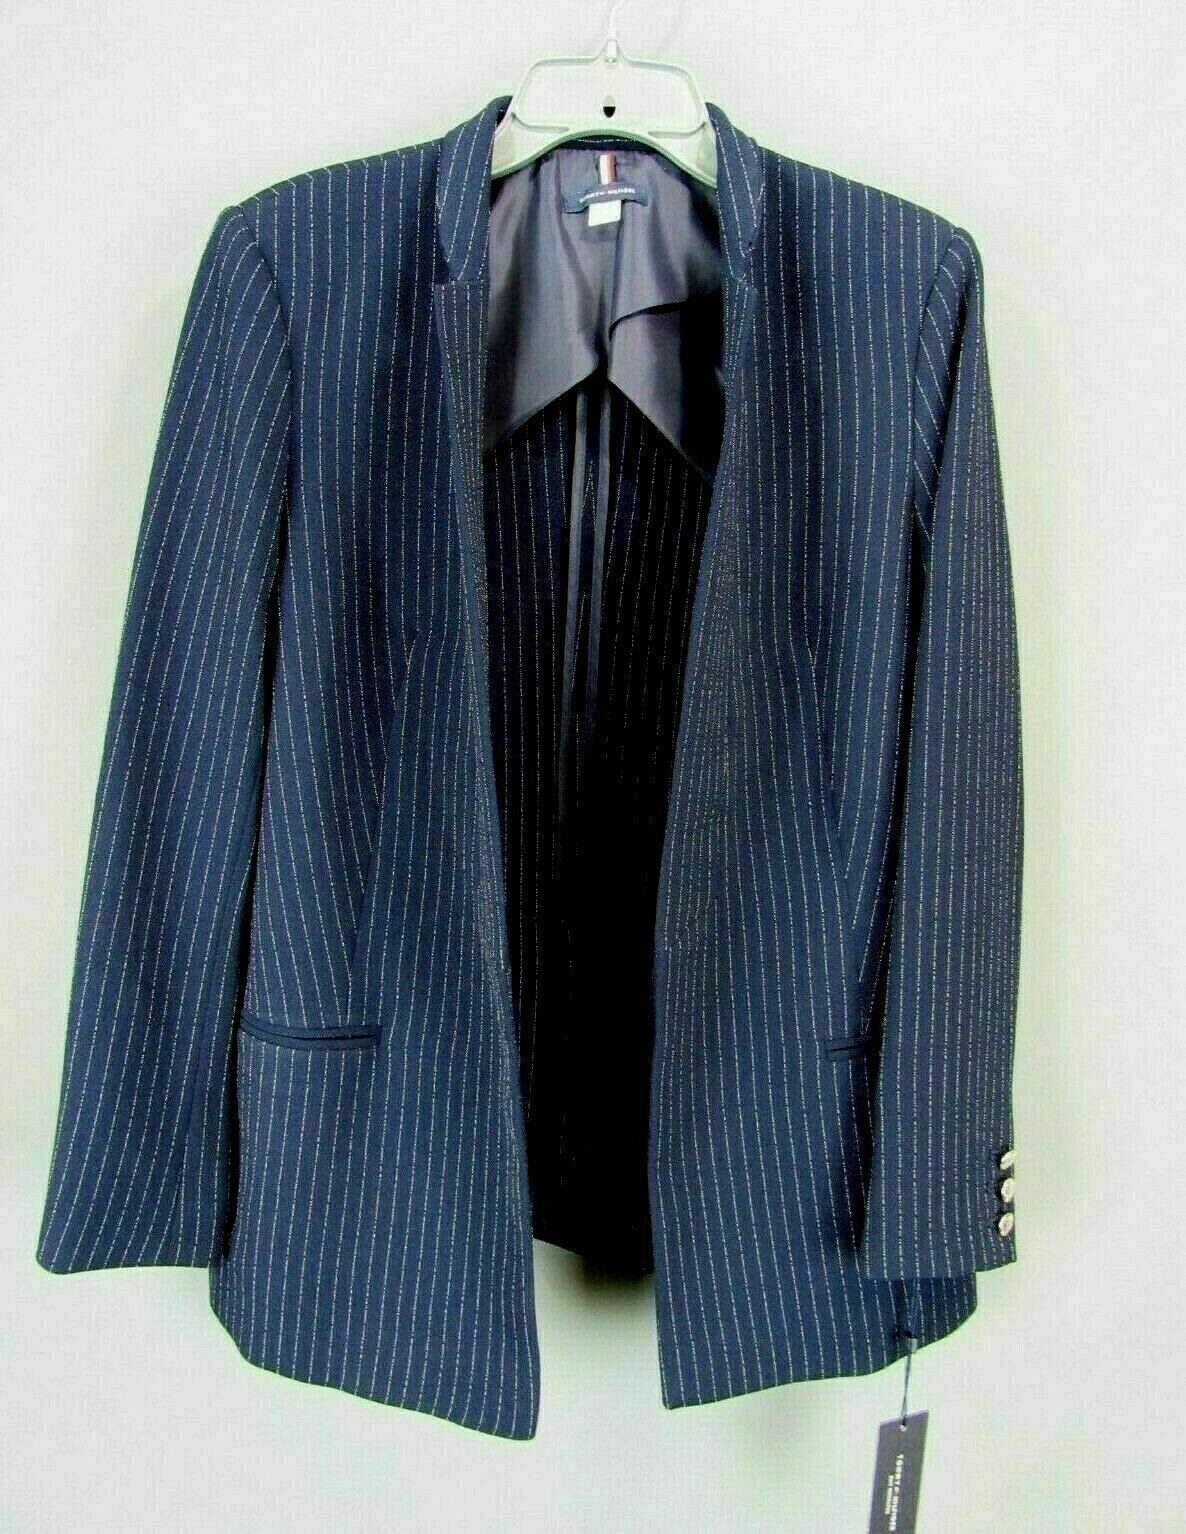 Tommy Hilfiger Women's  Pinstriped Open-Front Jacket MSRP $139 Size 16 image 2